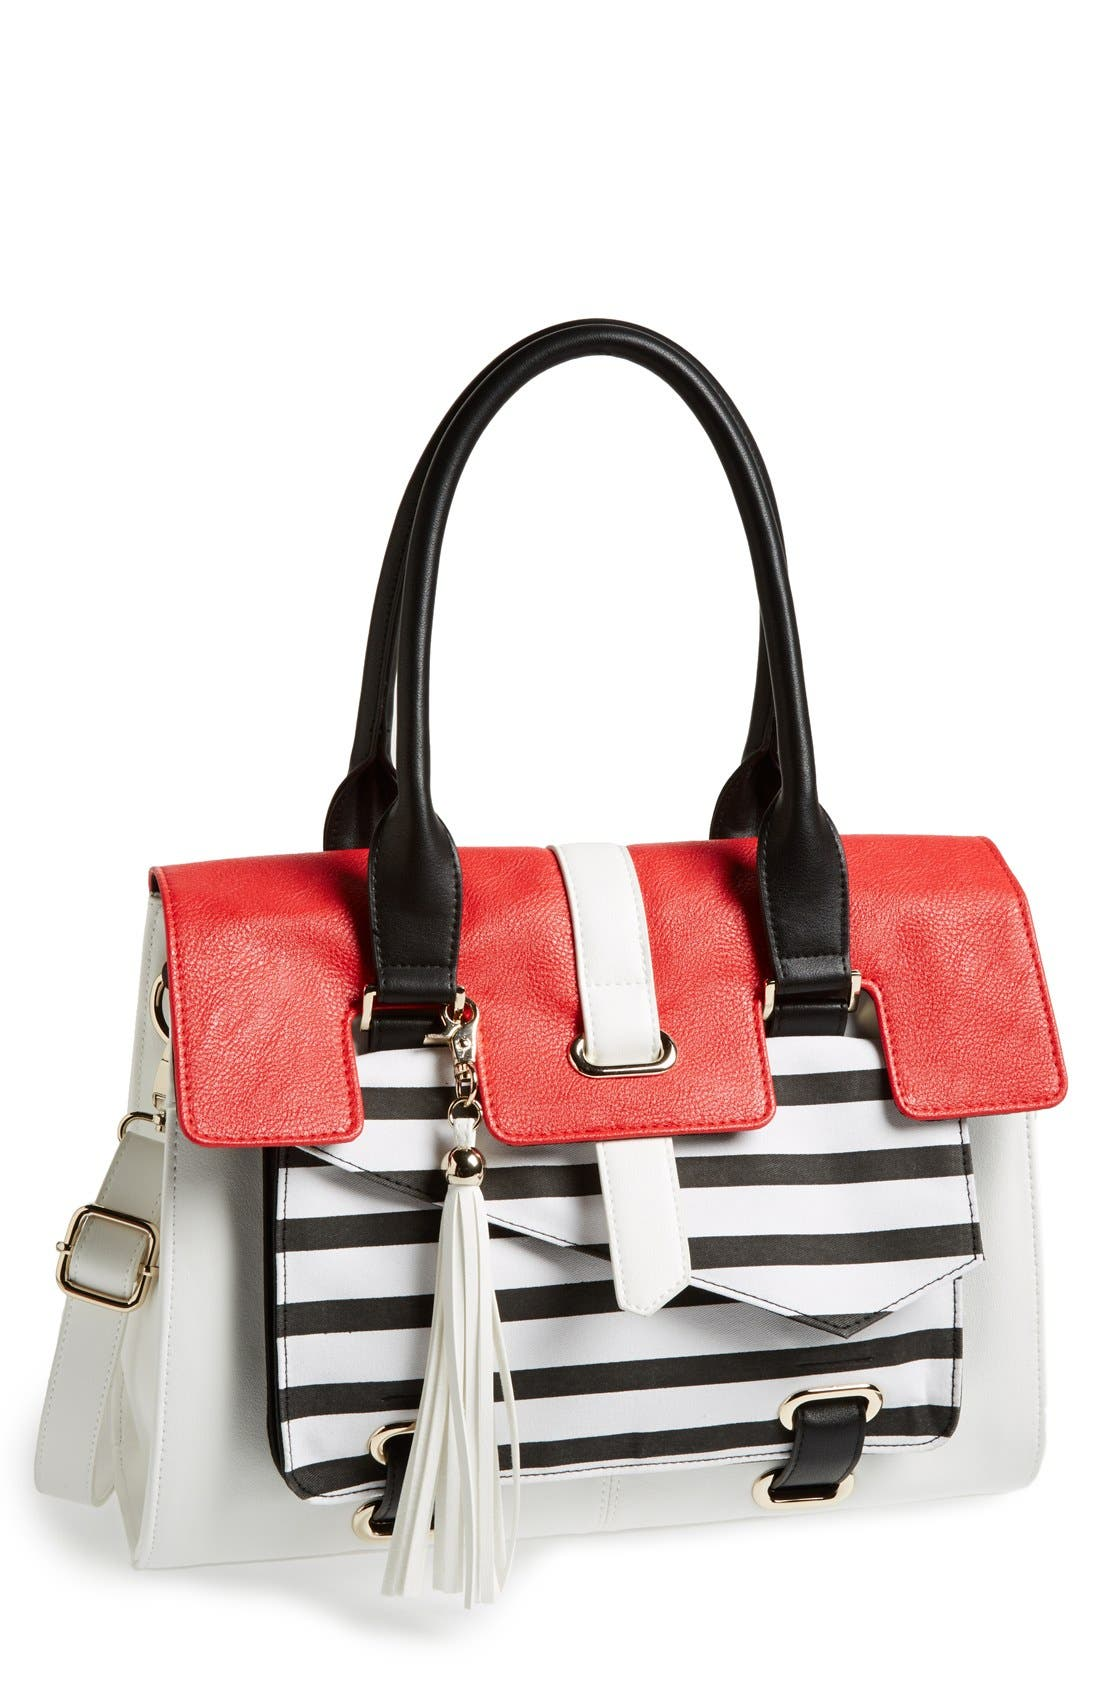 Alternate Image 1 Selected - POVERTY FLATS by rian Flap Satchel